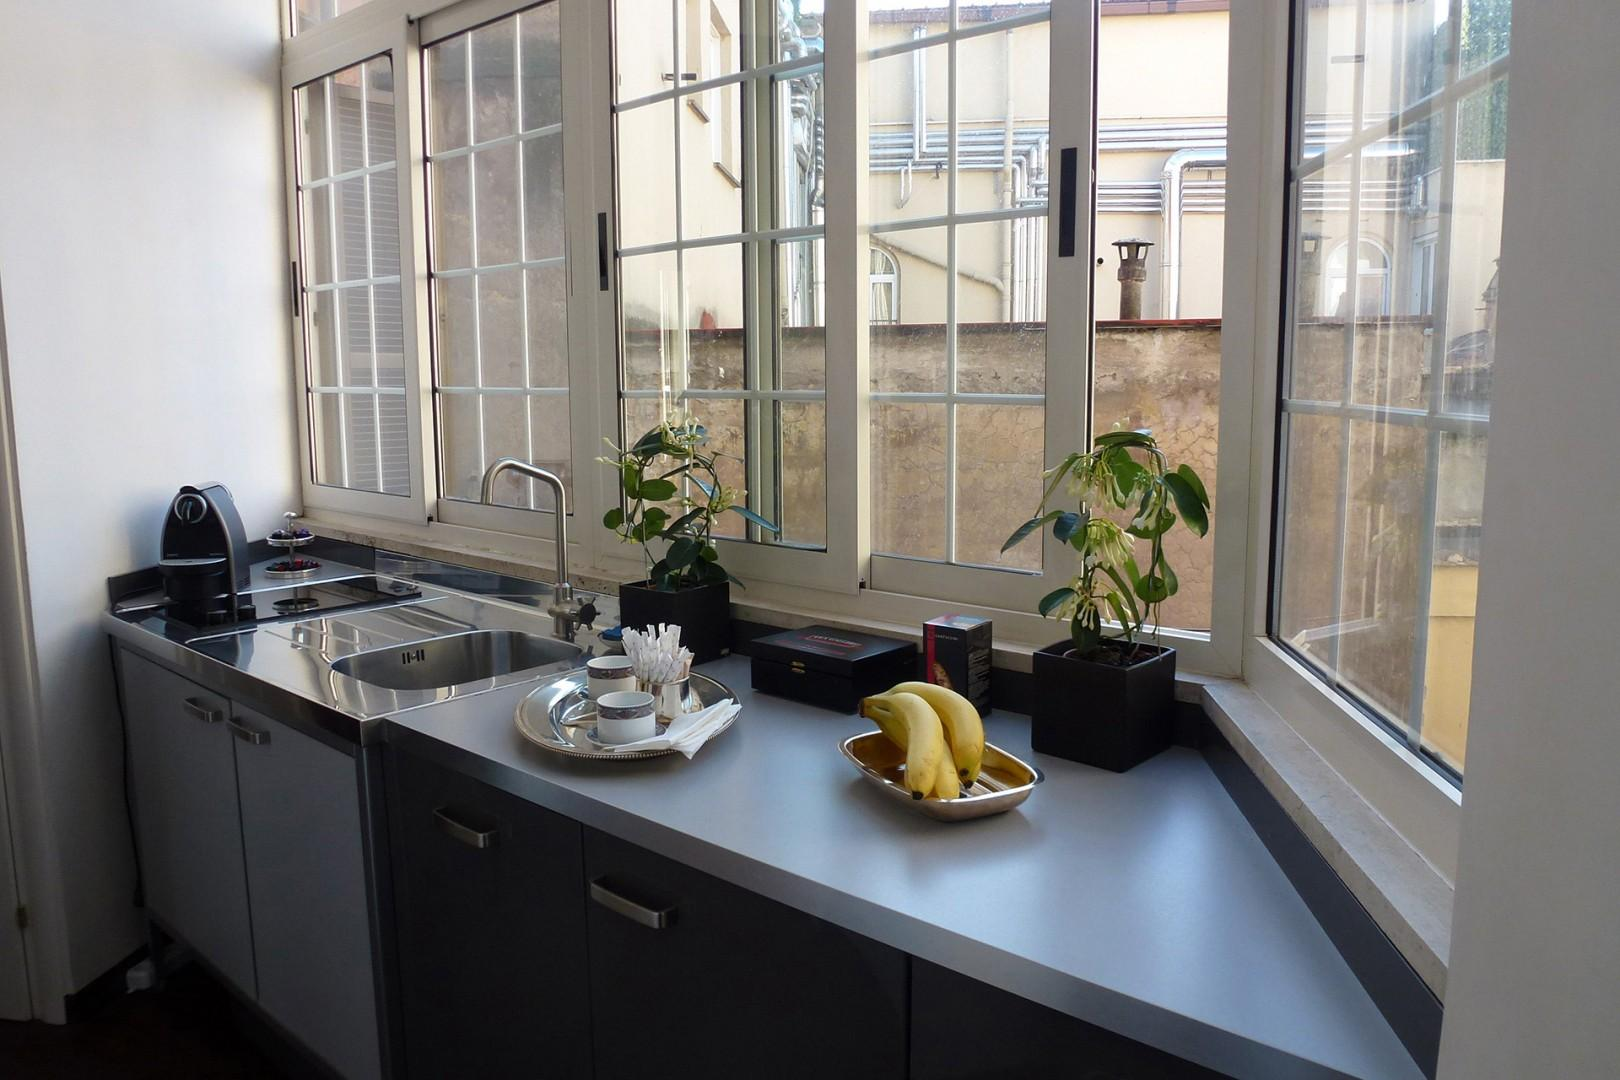 The kitchen has a wall of windows overlooking the courtyard and rooftops.